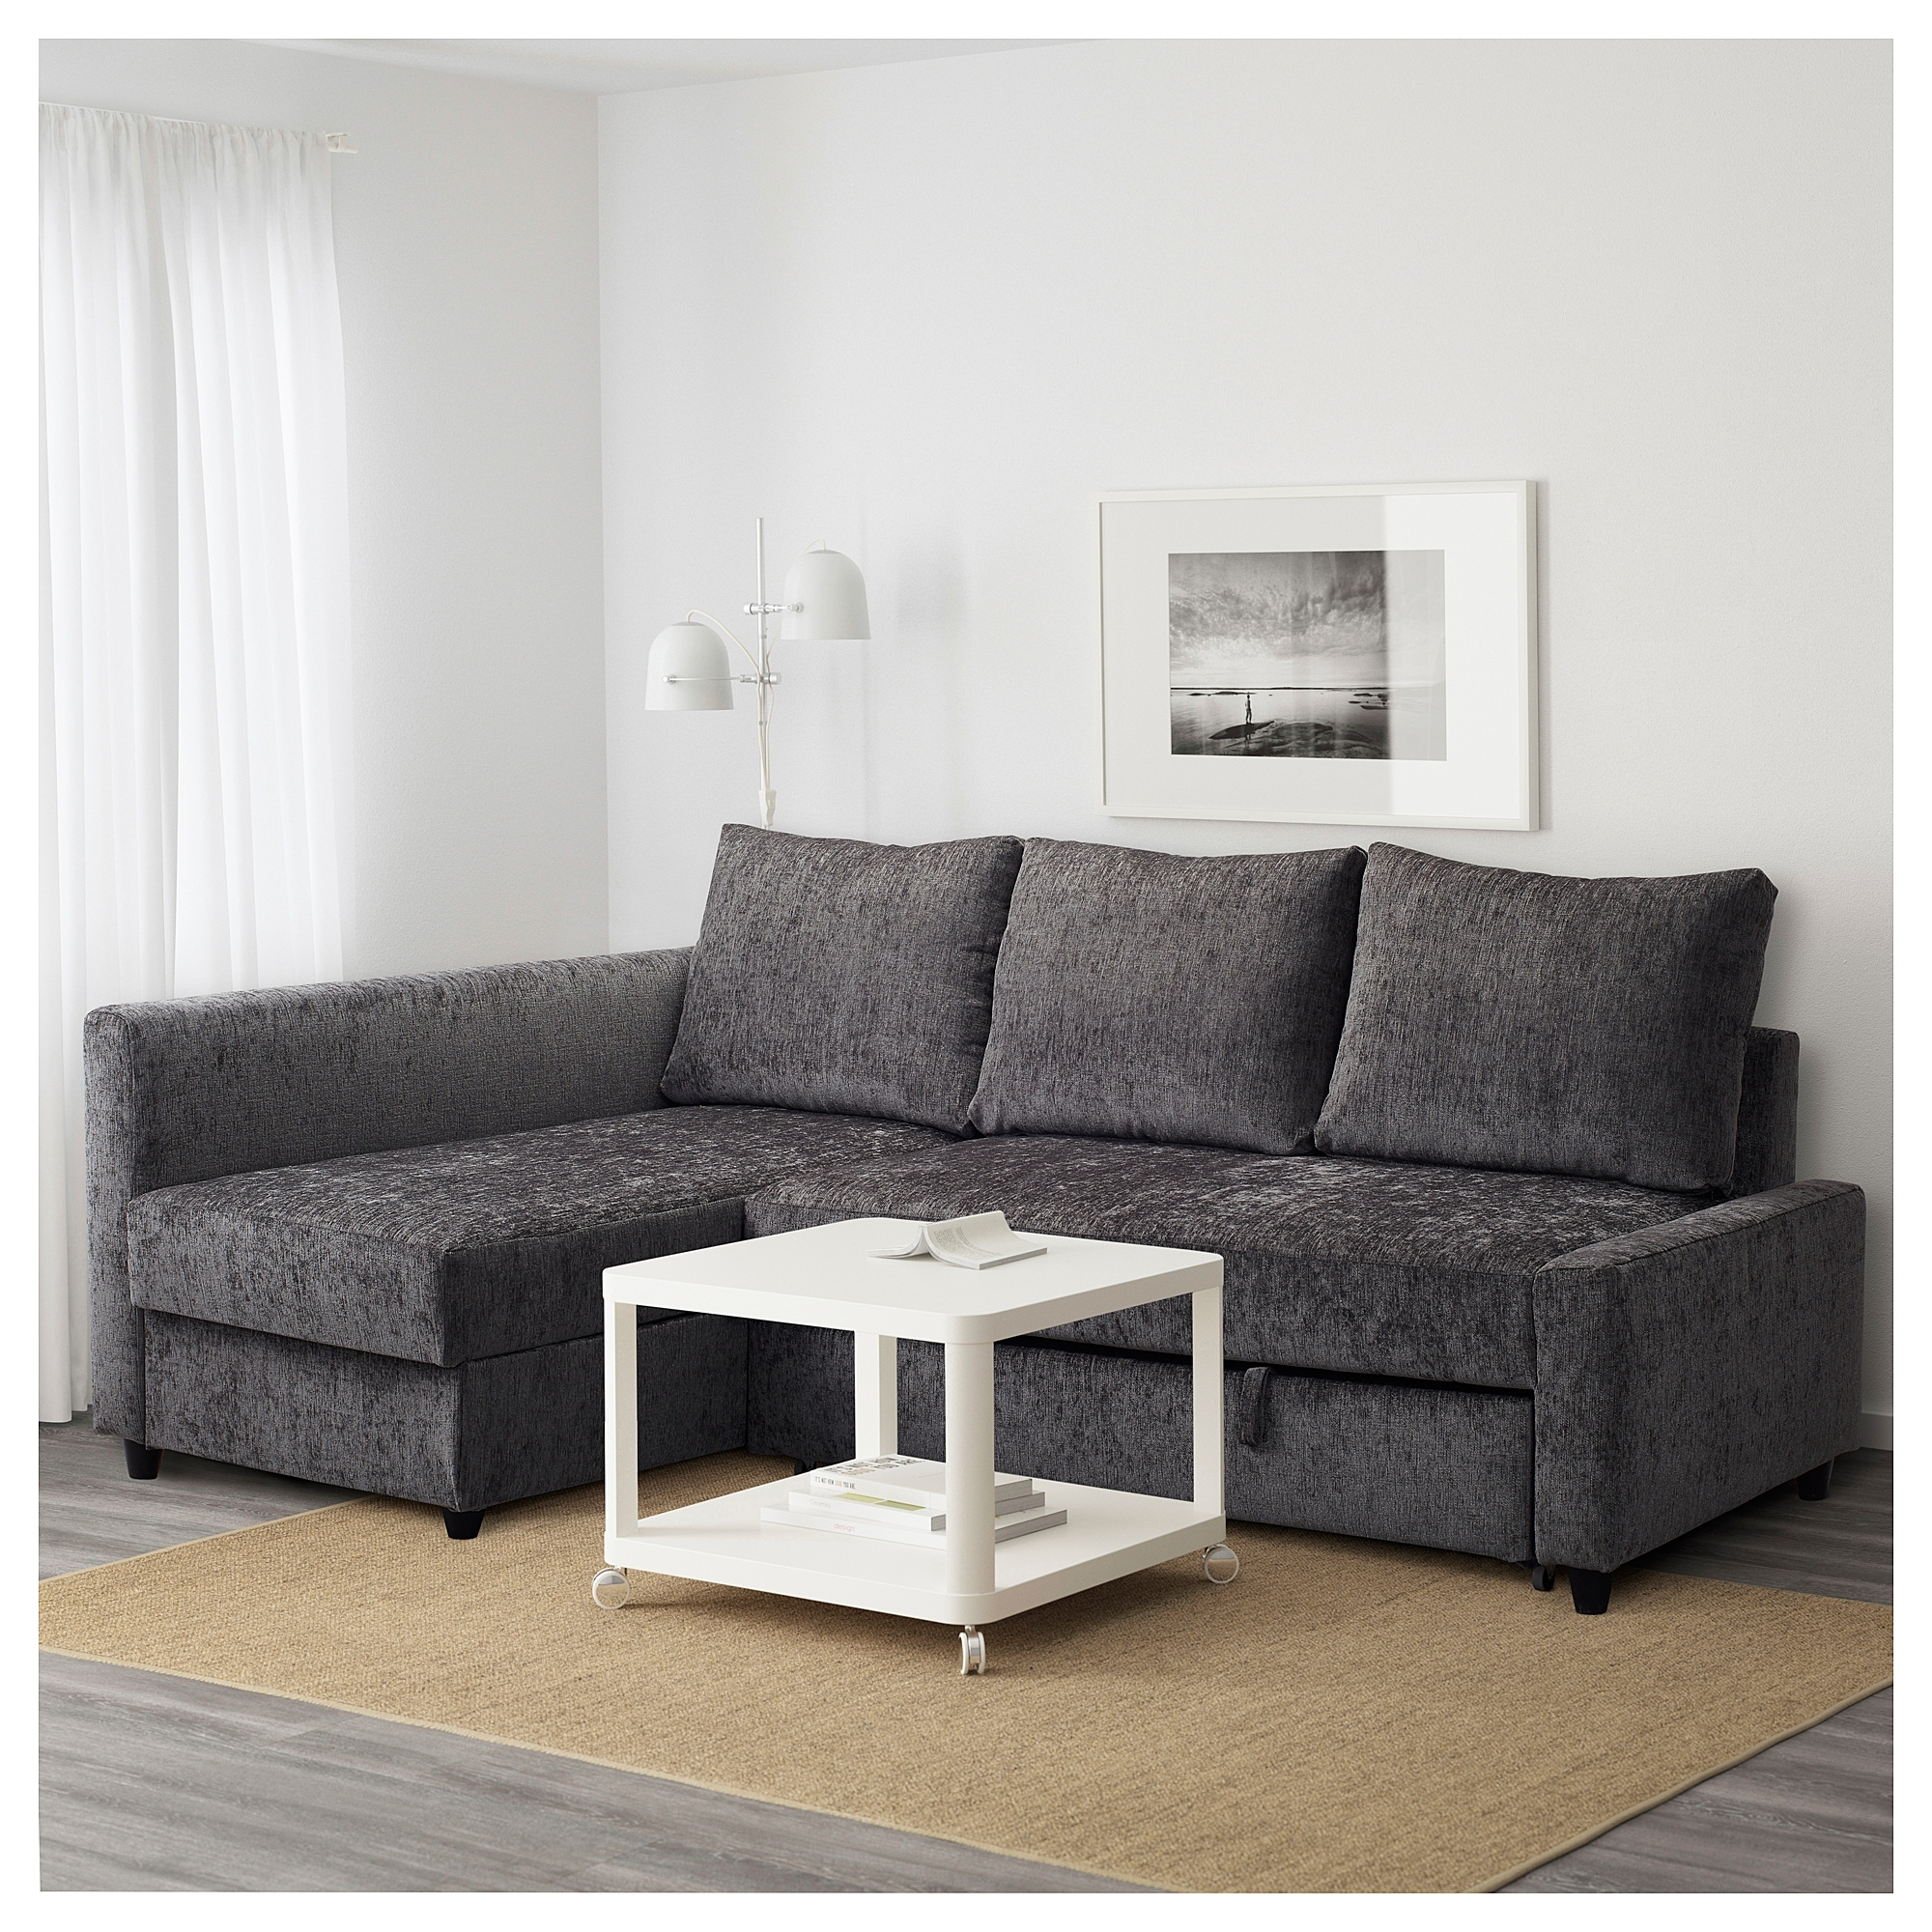 10 Best Ideas Ikea Corner Sofas With Storage | Sofa Ideas